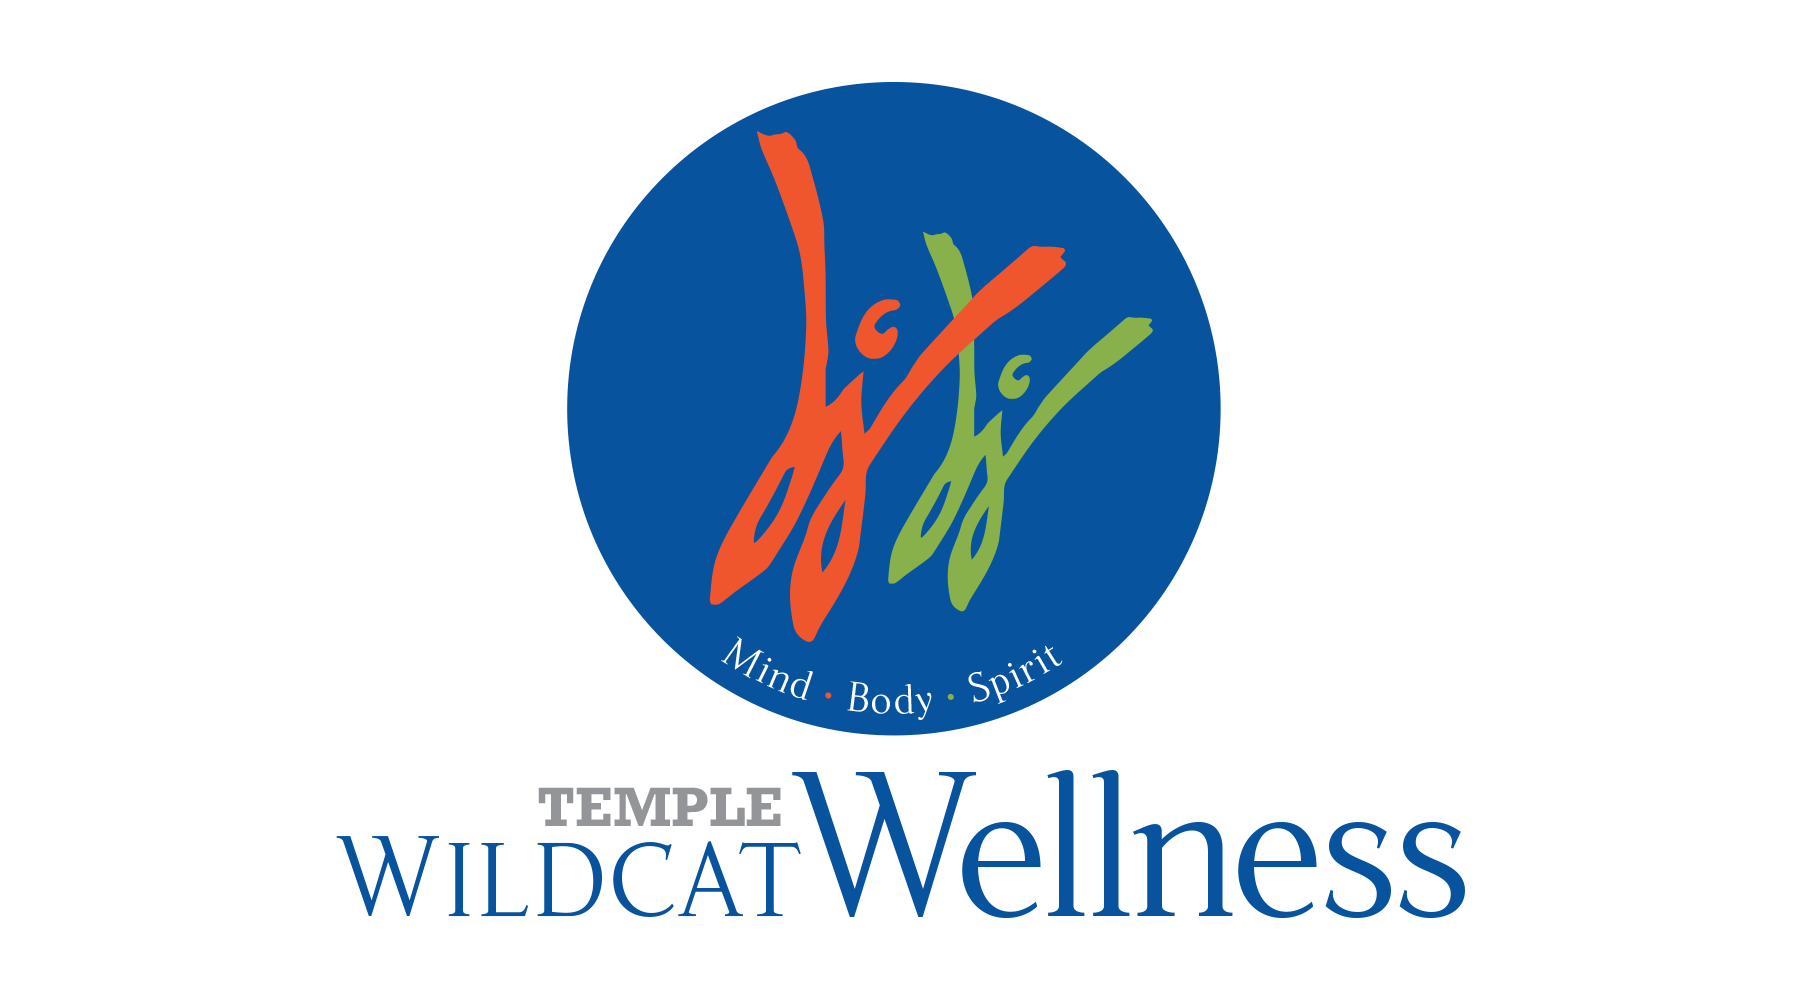 Temple Wildcat Wellness Logo